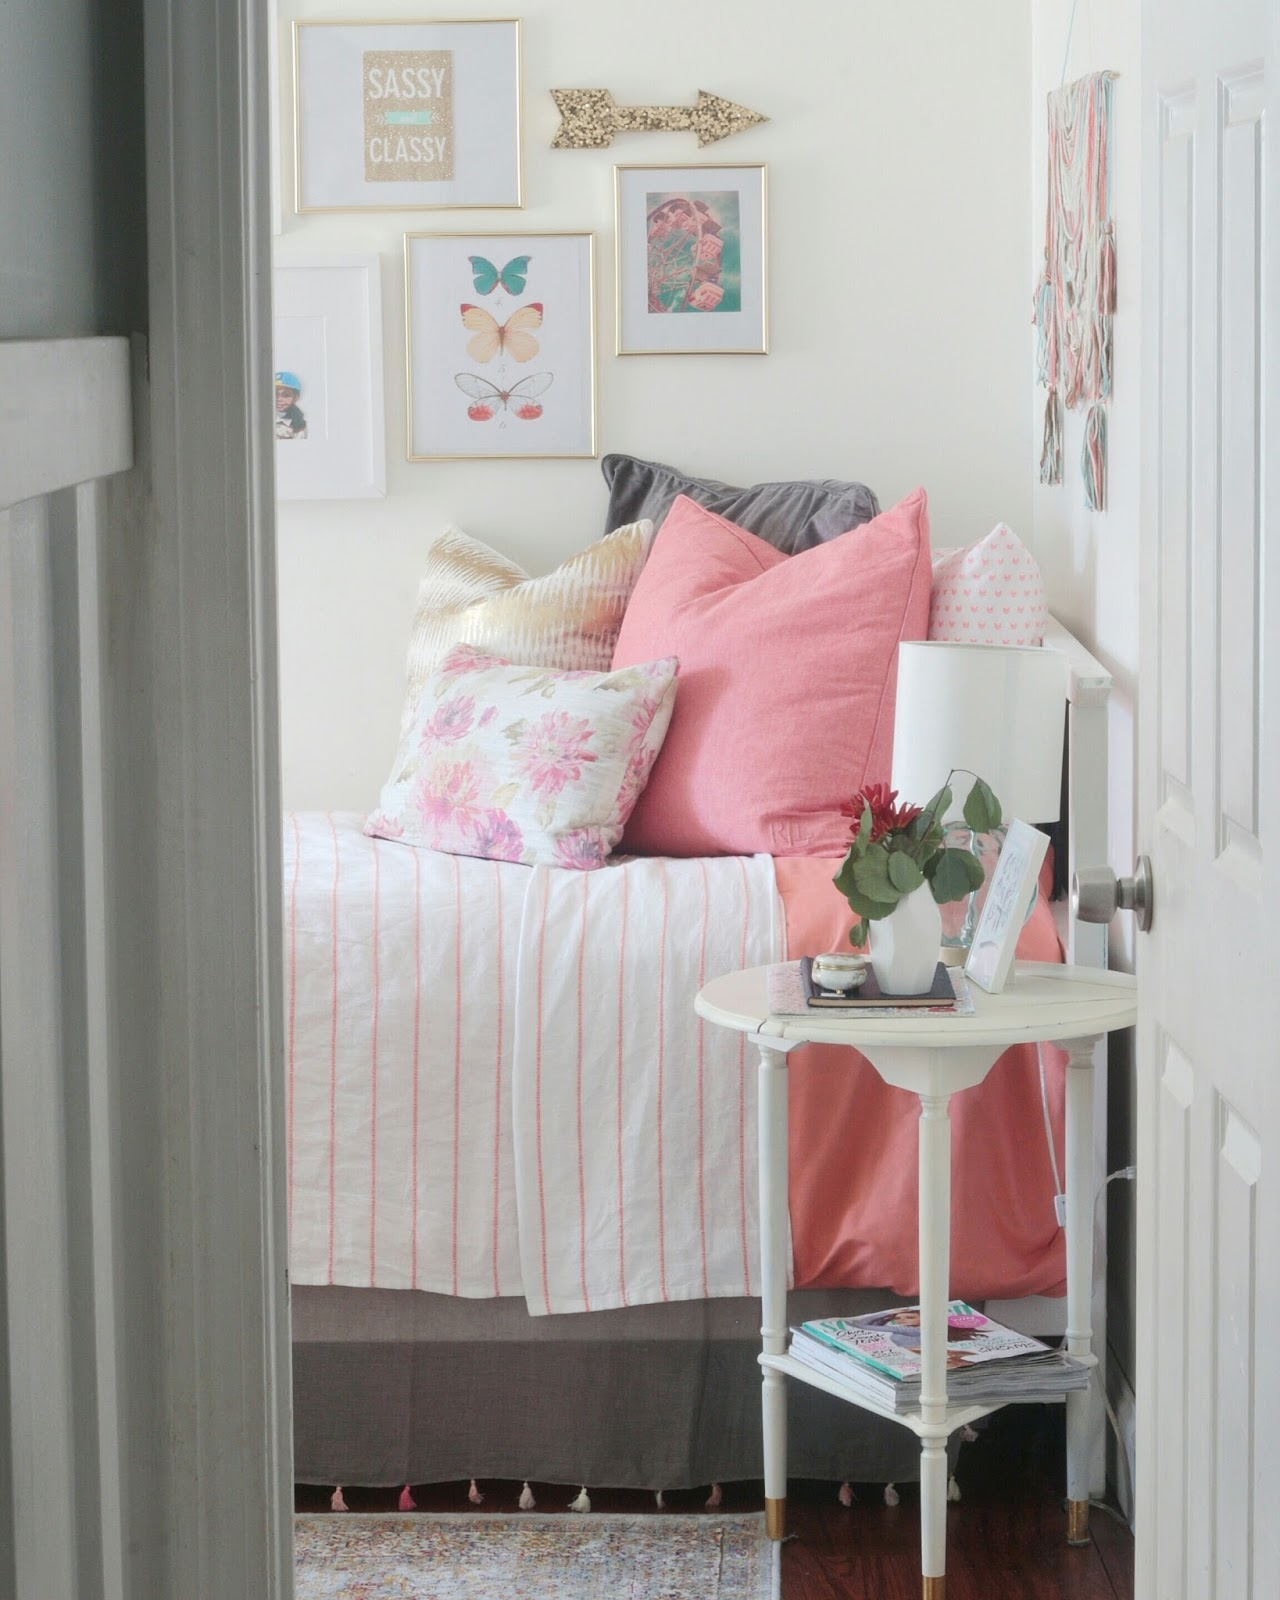 My Daughter's Room: Pre-Teen Bedroom Refresh Reveal